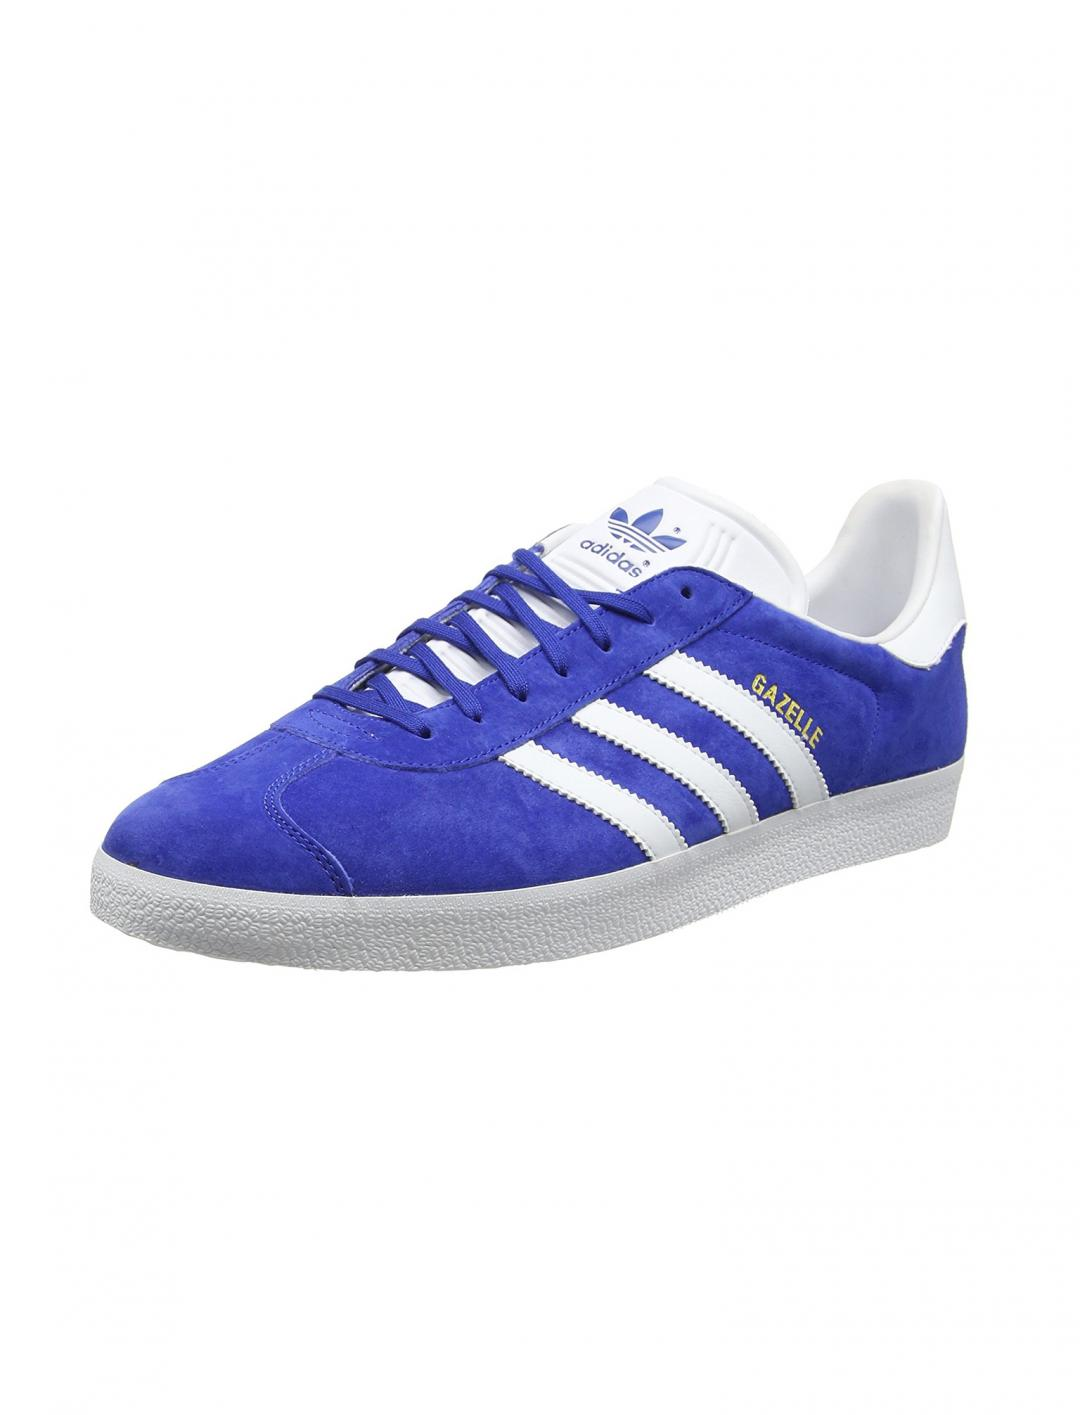 "Gazelle Shoes {""id"":12,""product_section_id"":1,""name"":""Shoes"",""order"":12} Adidas"